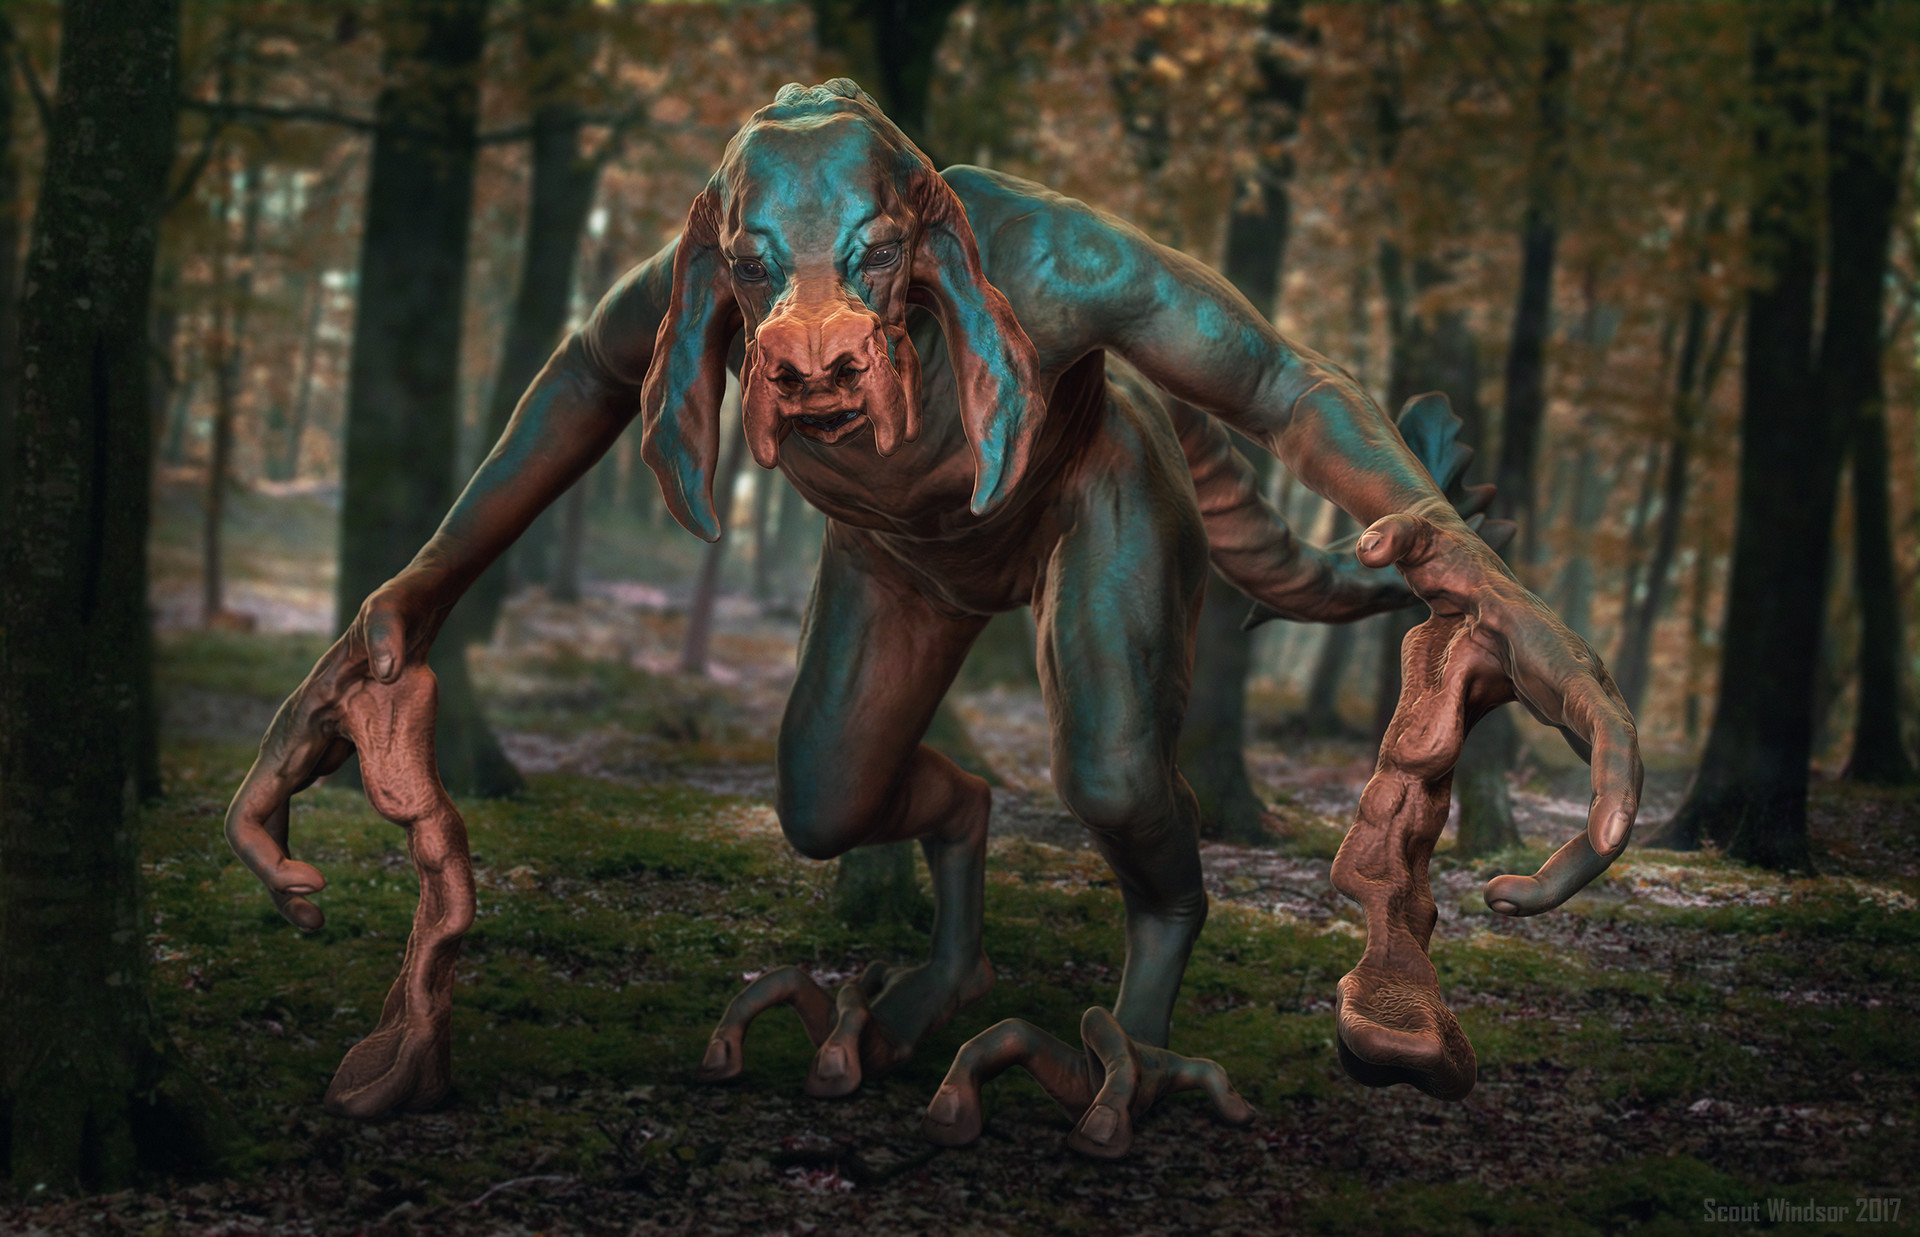 Scout windsor zsphere creature render 2v2 png